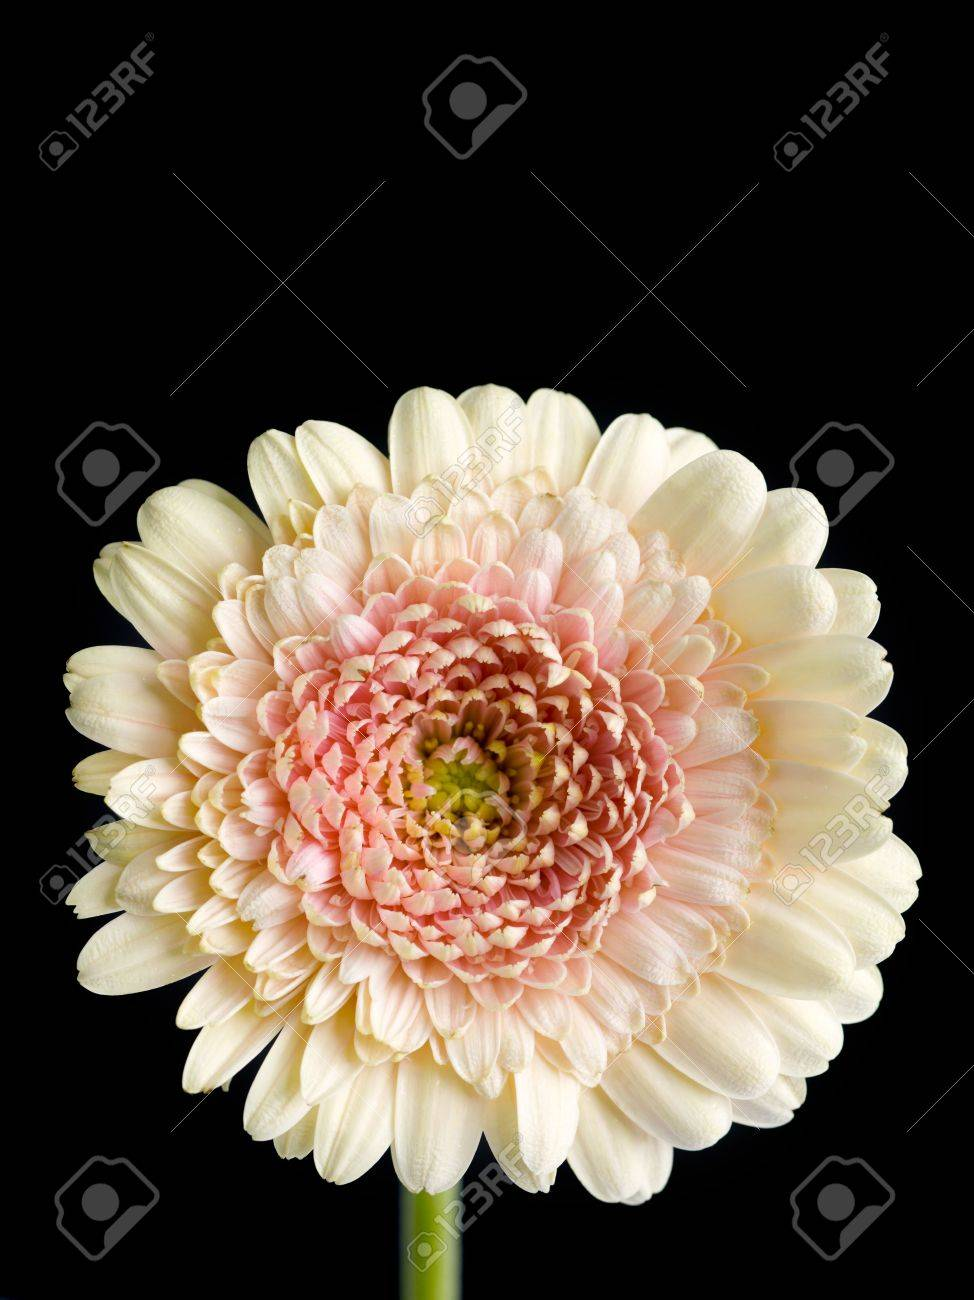 Image Of White Chrysanthemum Flower On Dark Stock Photo Picture And